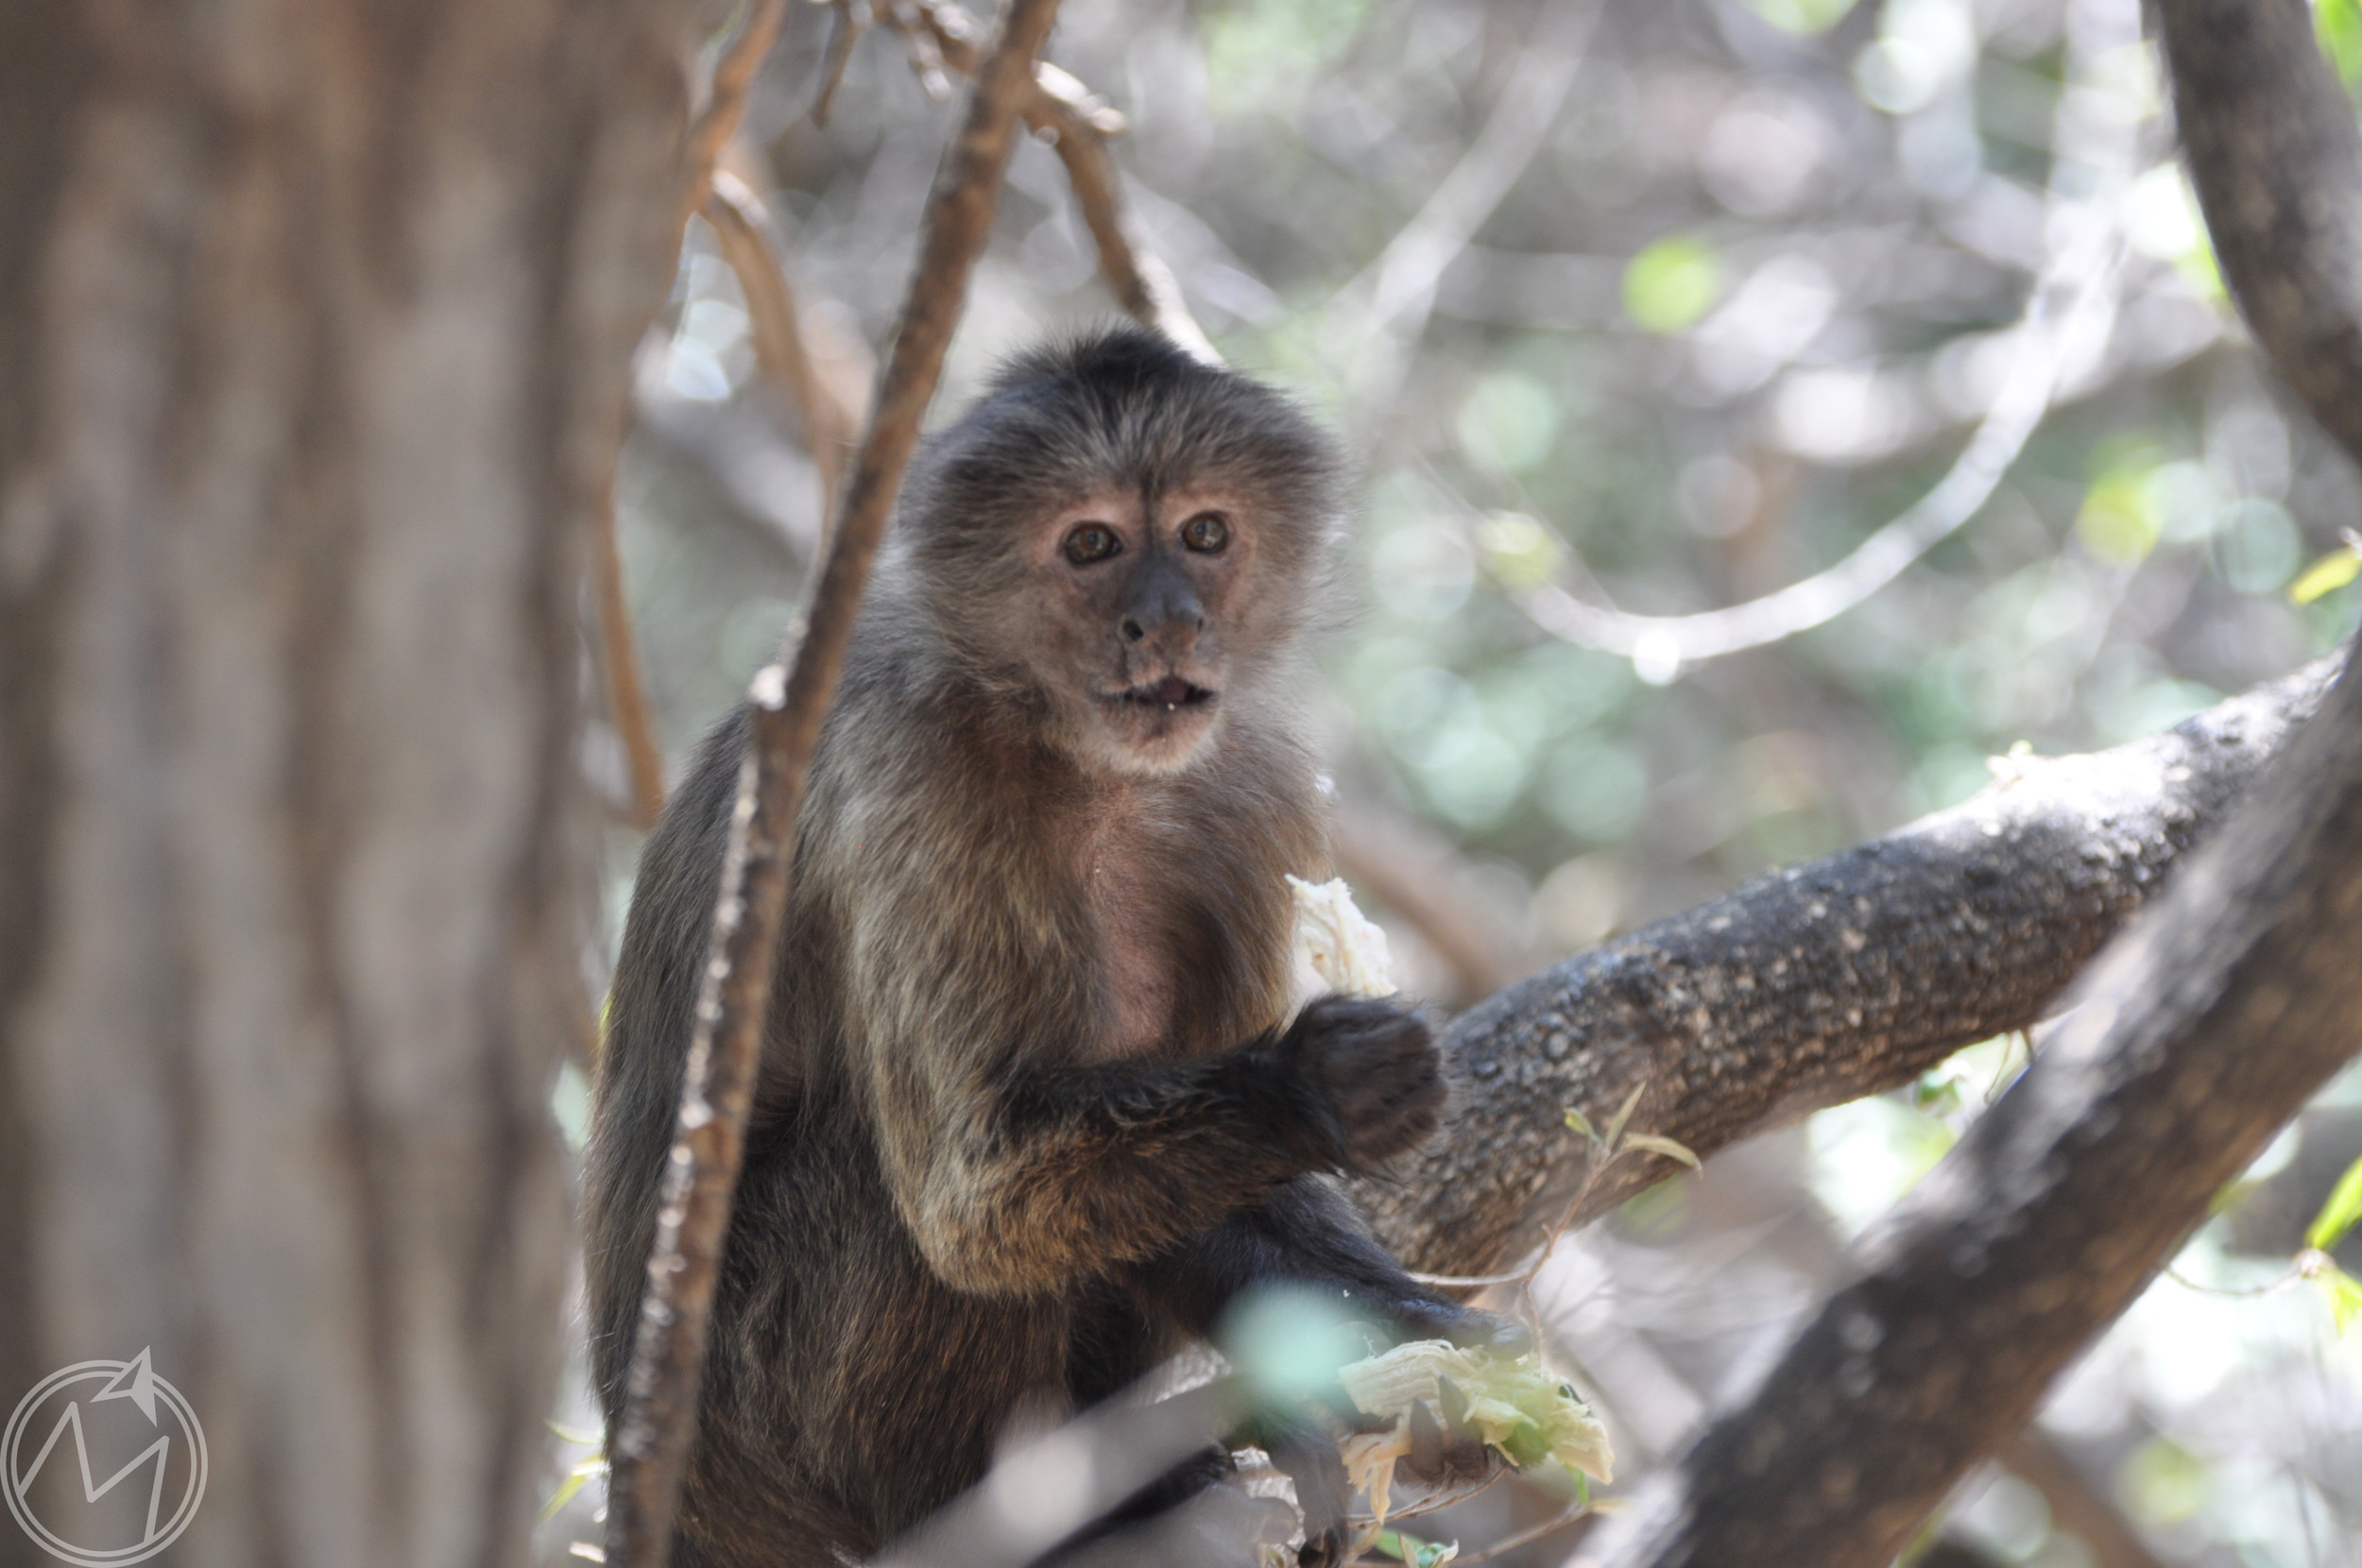 this monkey reminded me so much of a human;it was weird! the facial expressions, noshing on his lunch, his mannerisms. so funny!